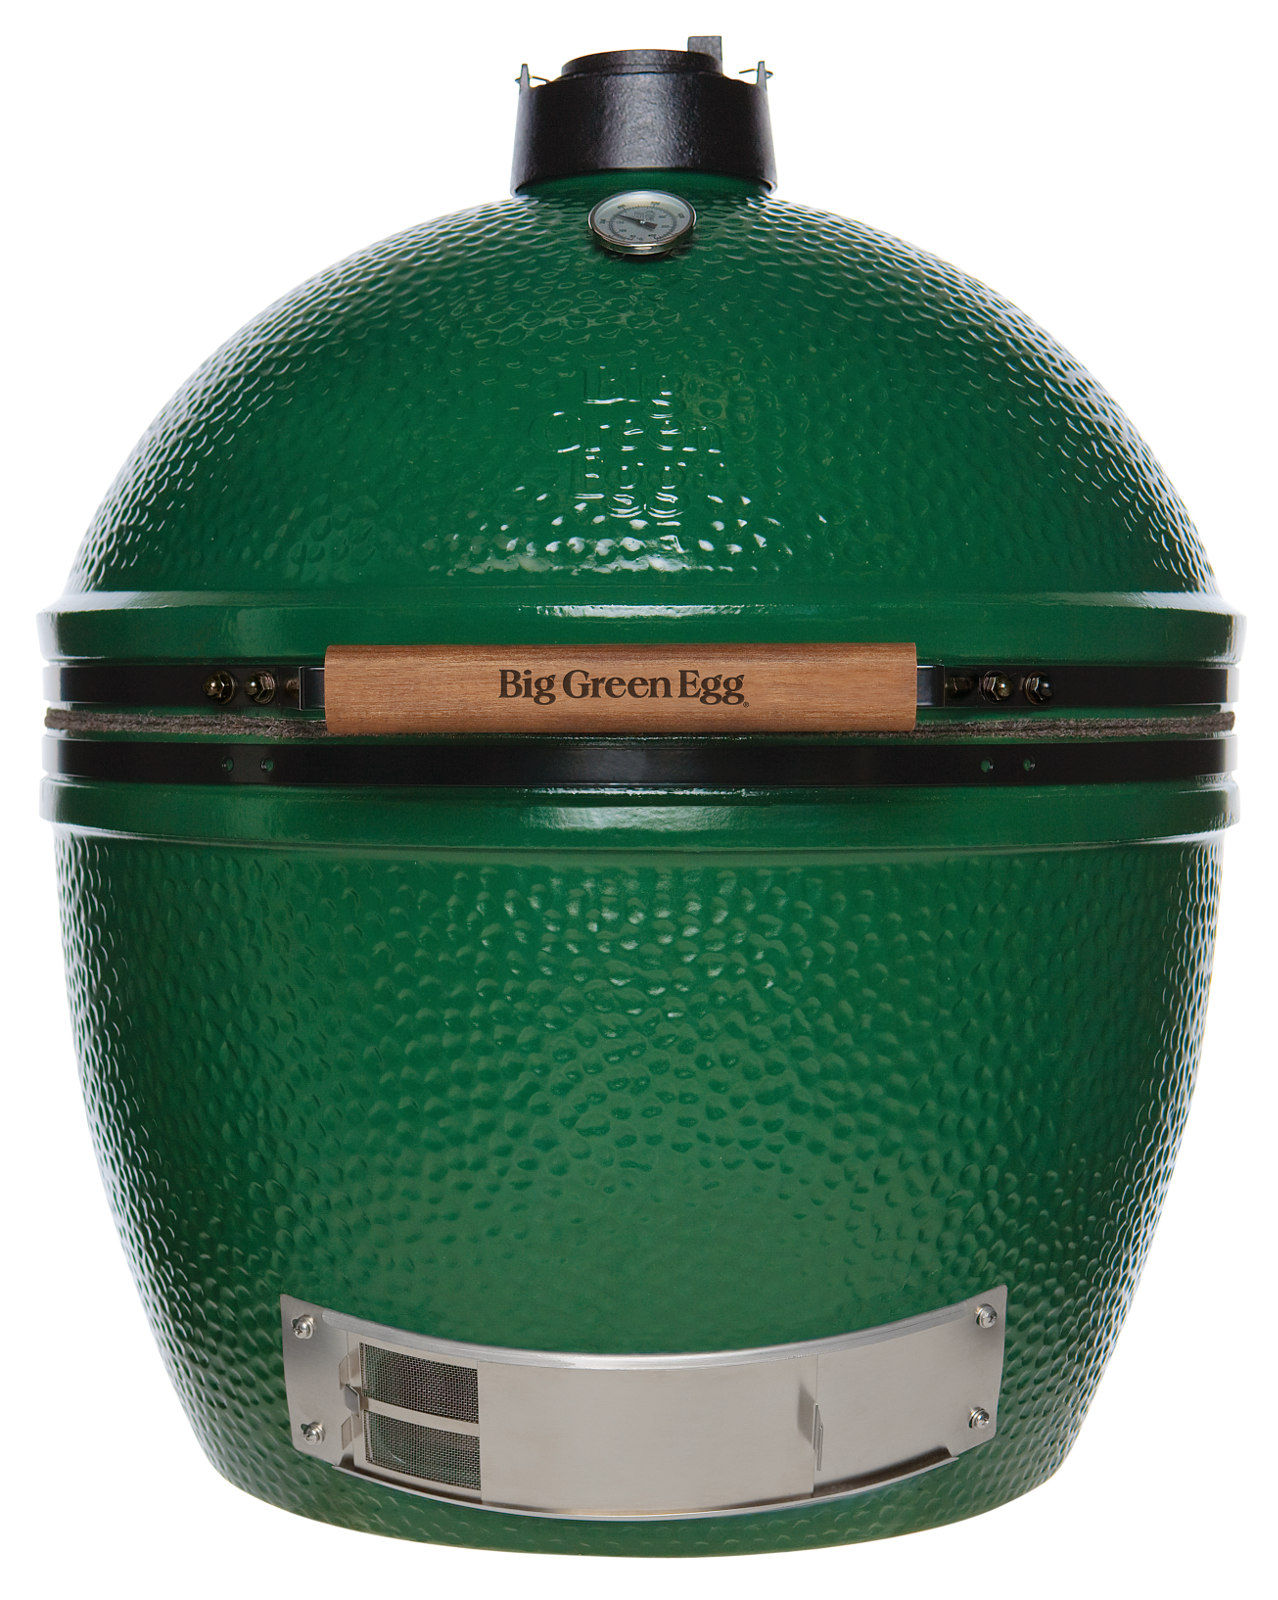 Hiiligrilli Big Green Egg Extra Large